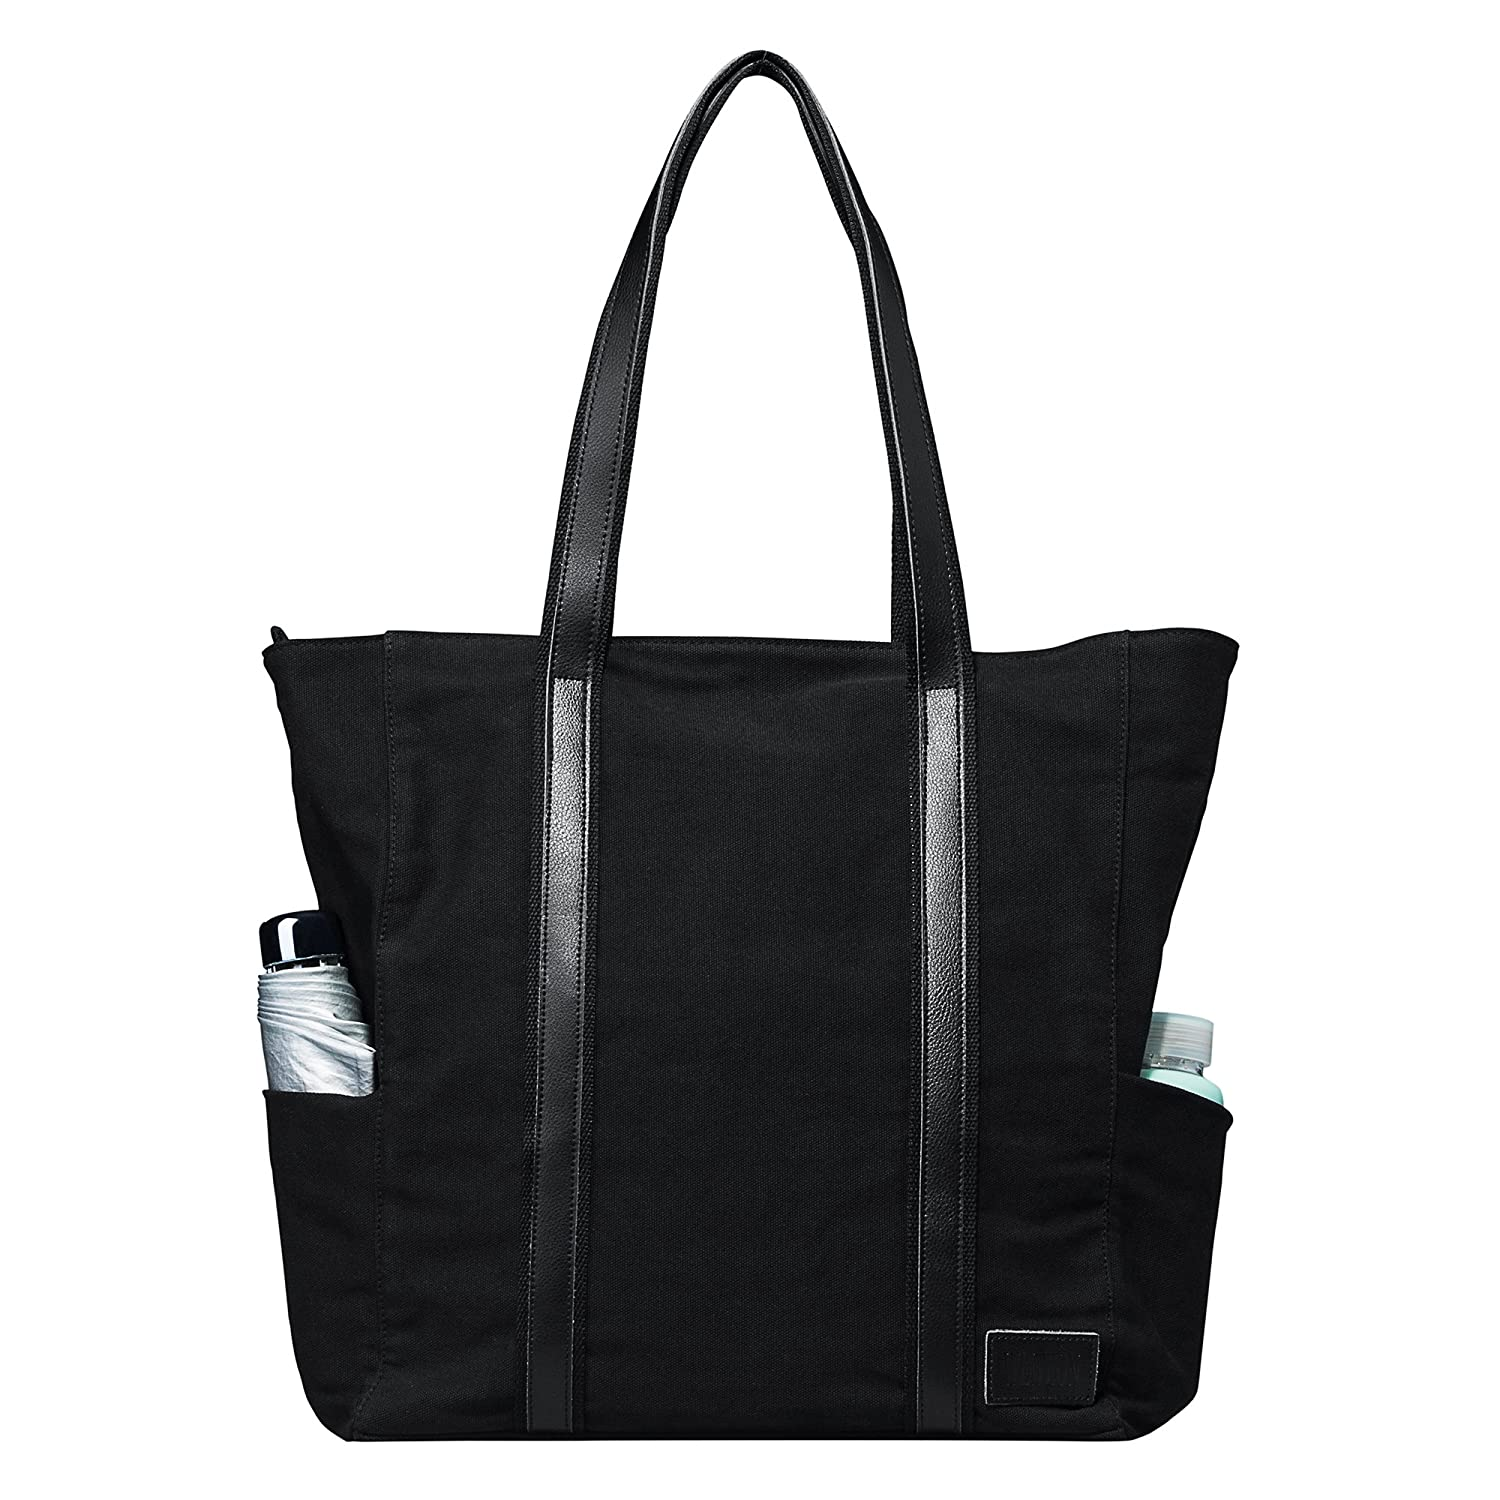 056f99bf8de1 Amazon.com  WEWEON Top Laptop Tote Computer Work Office Bag Best for Women  Large Canvas  Computers   Accessories